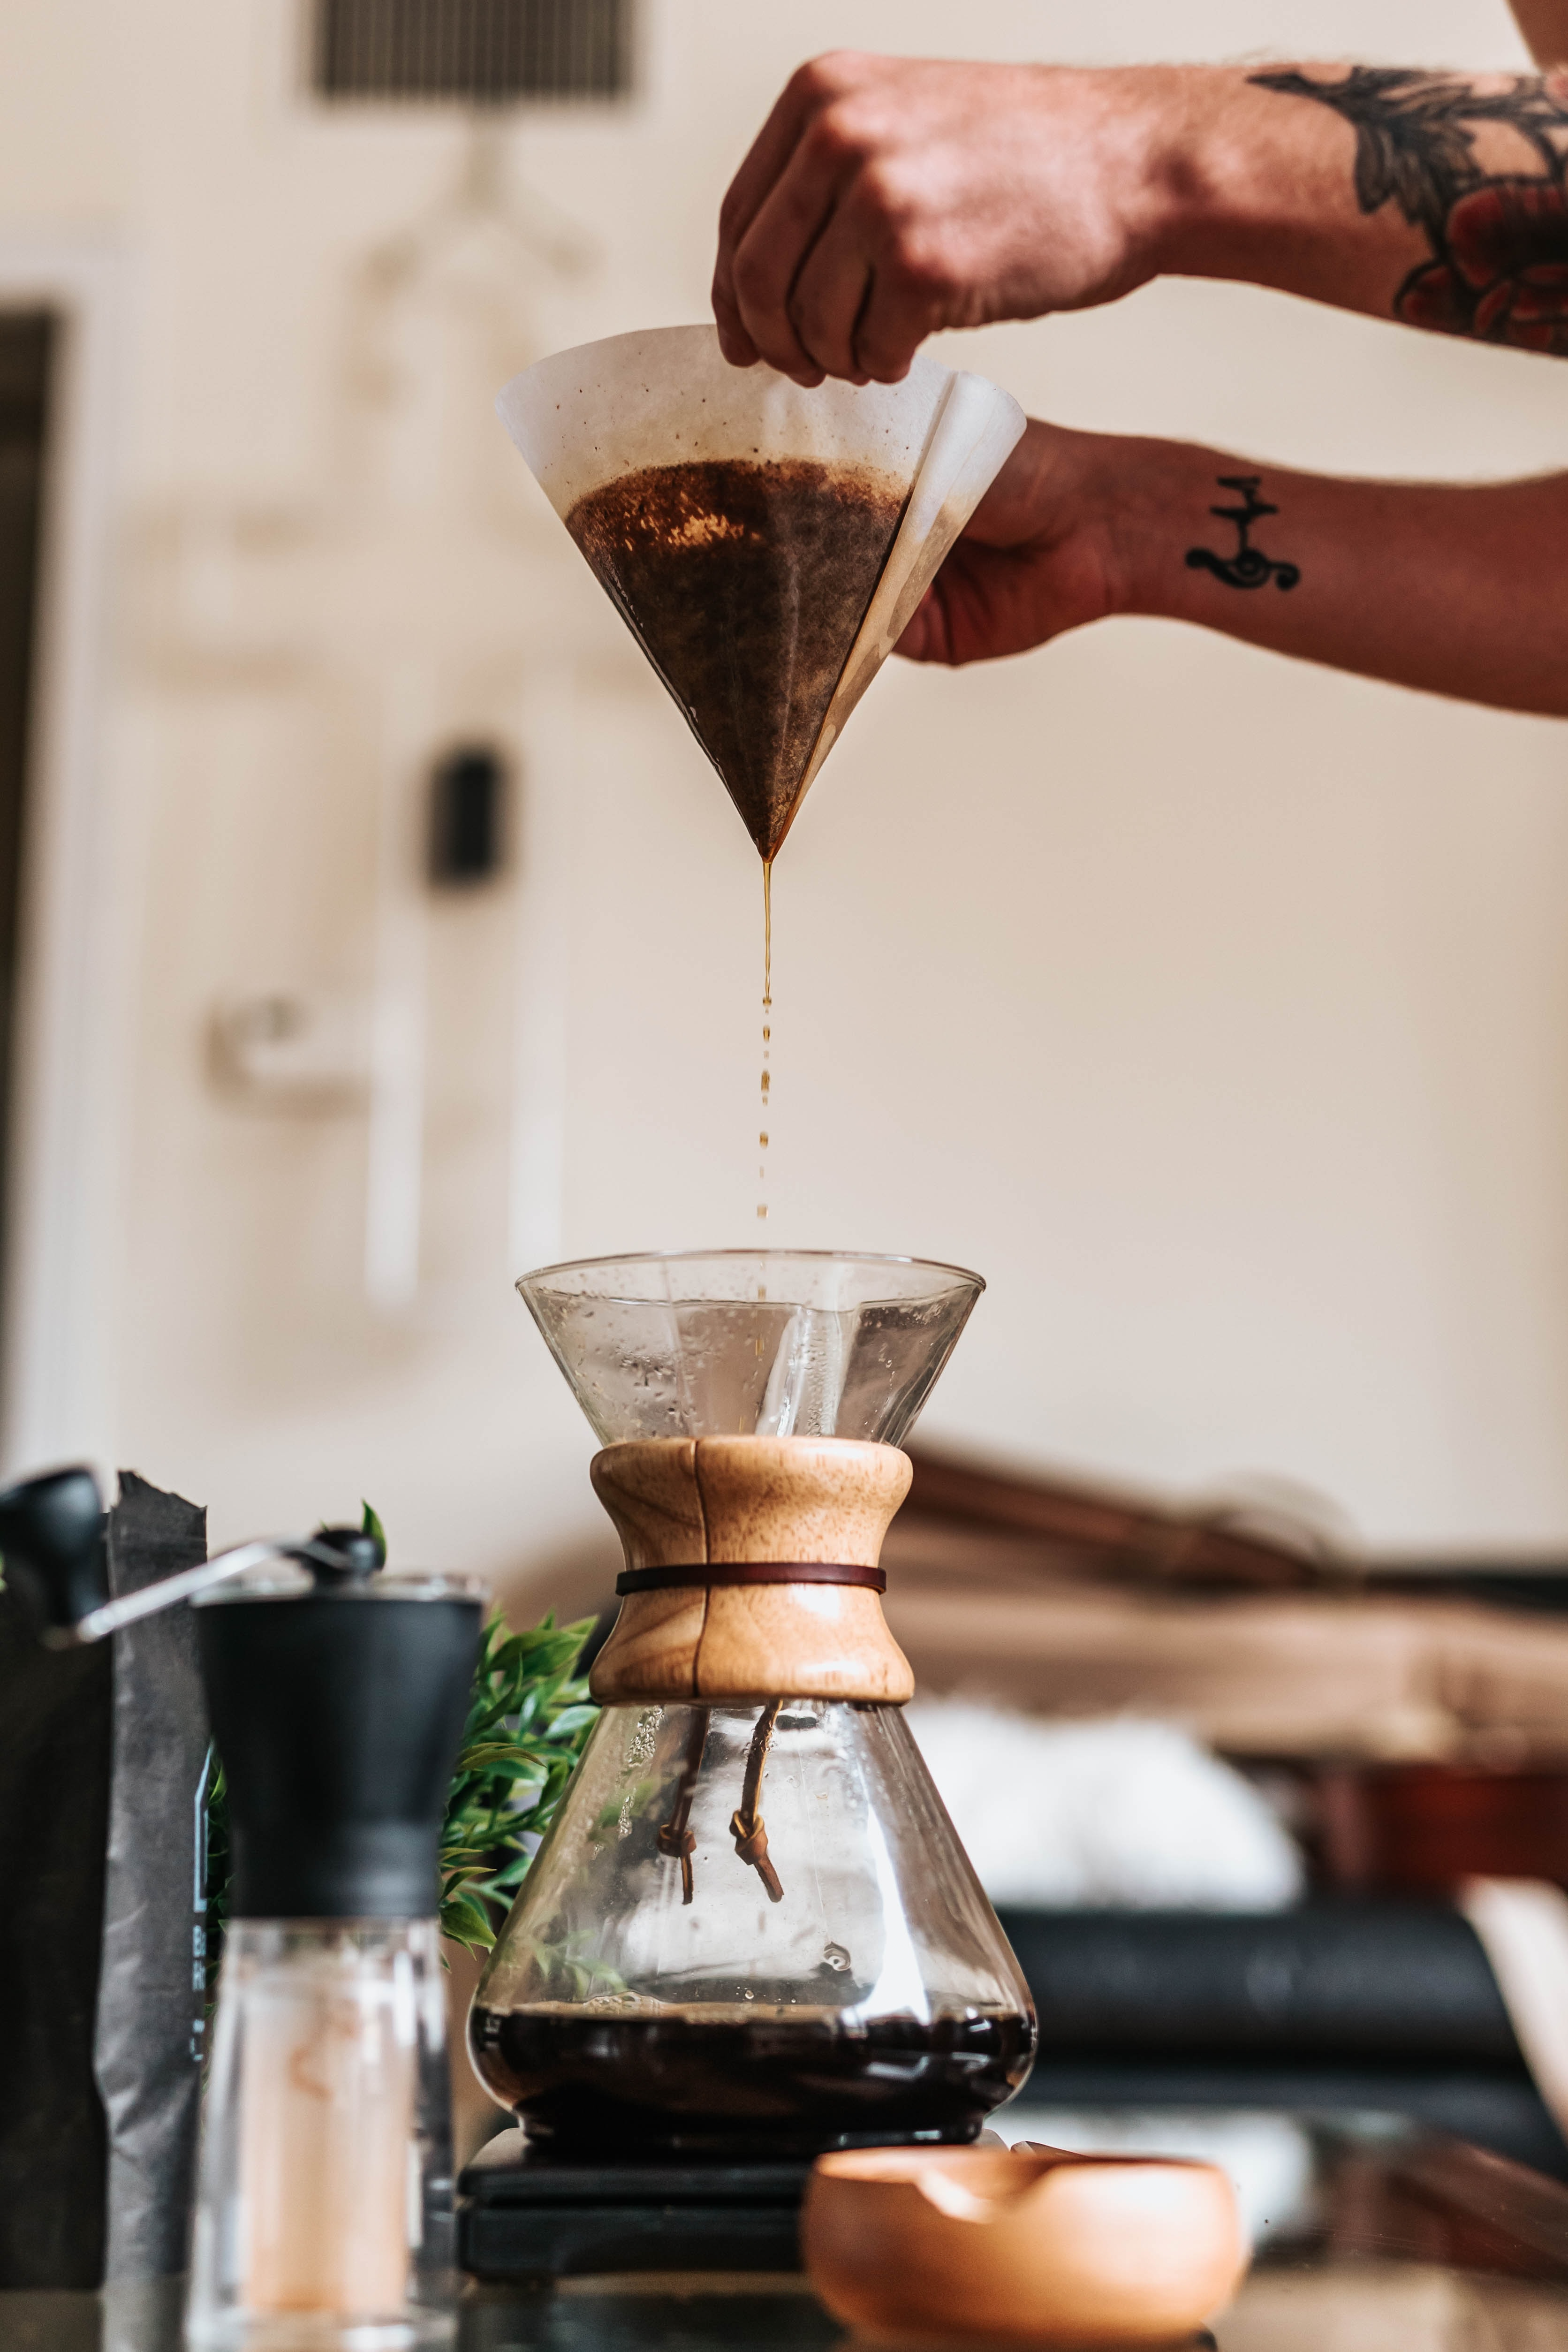 person filtering coffee in funnel